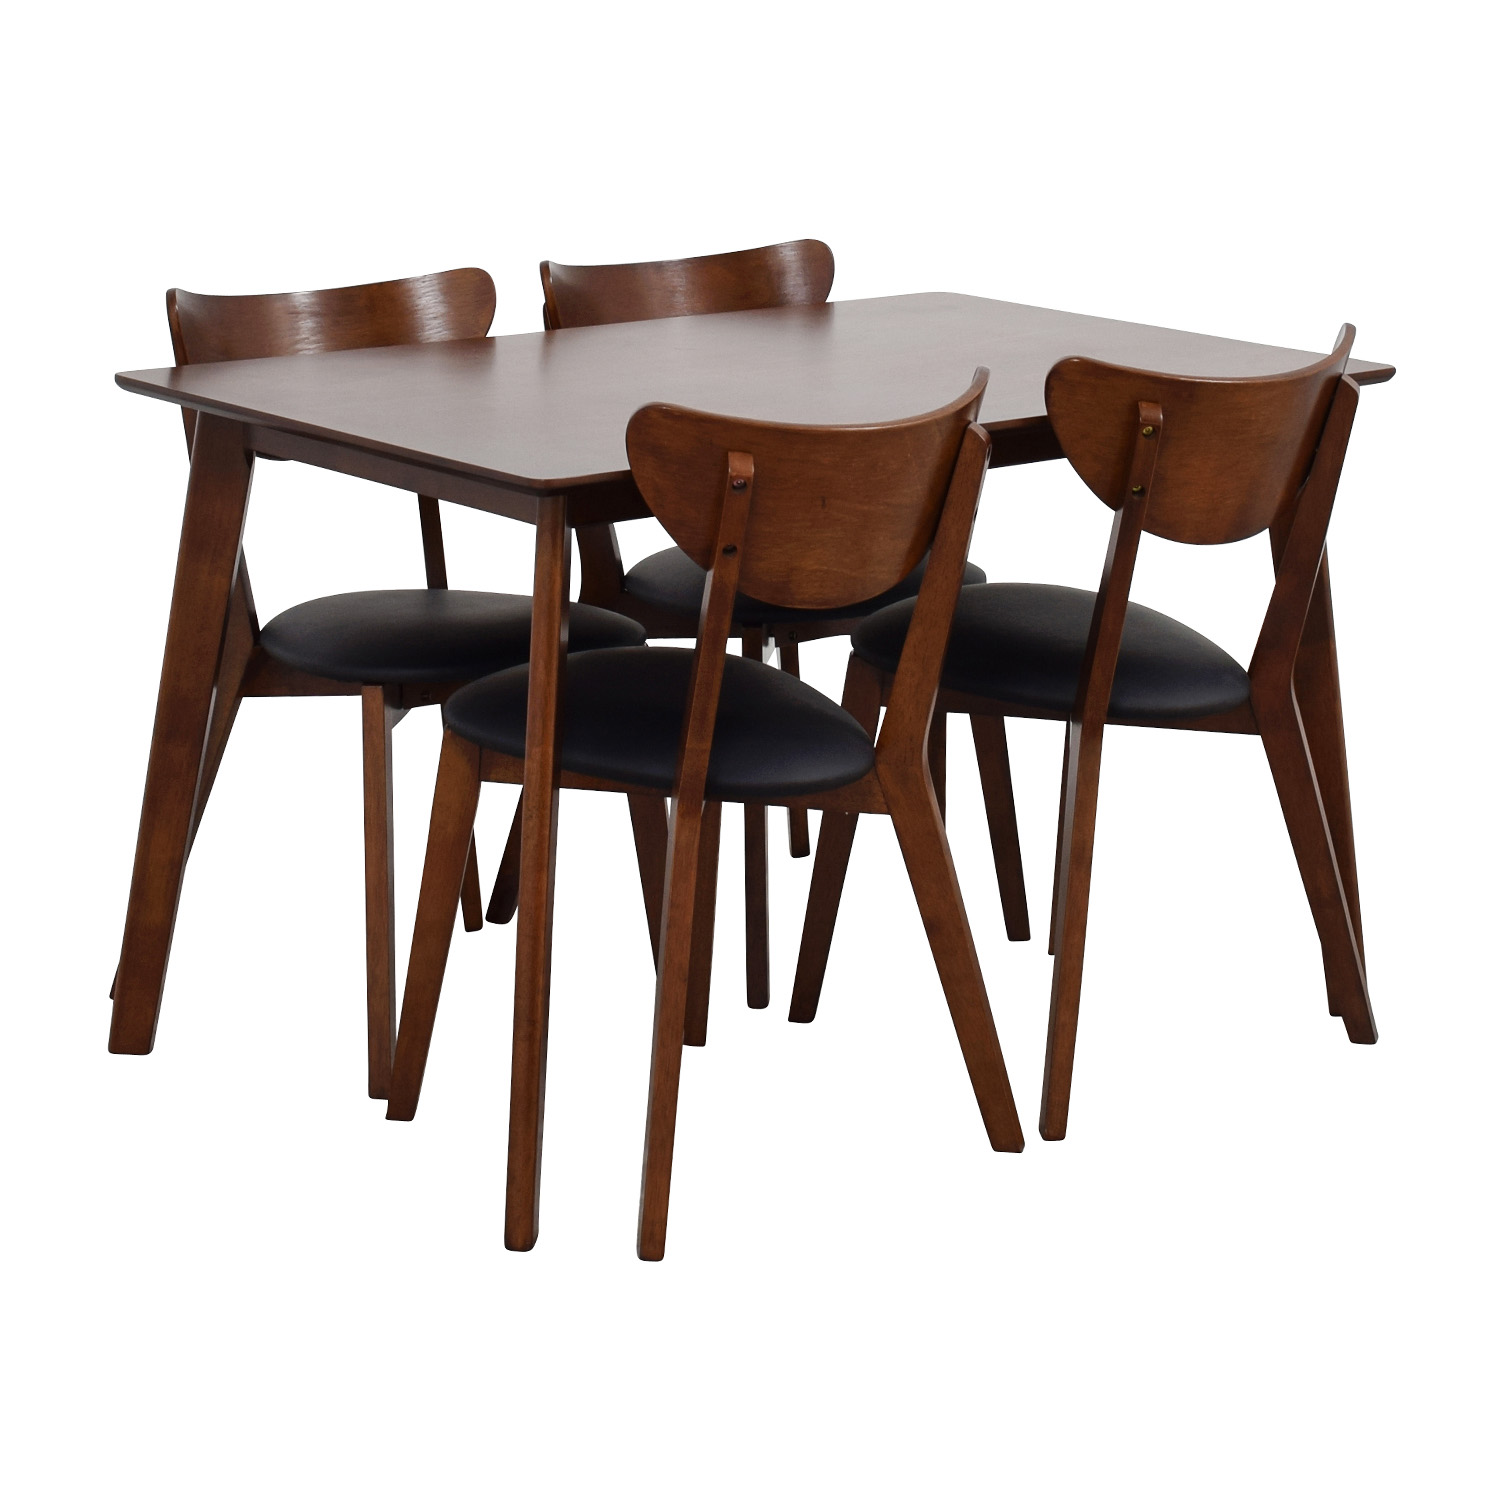 35 off wholesale interiors brown dining table set with for Dining table set